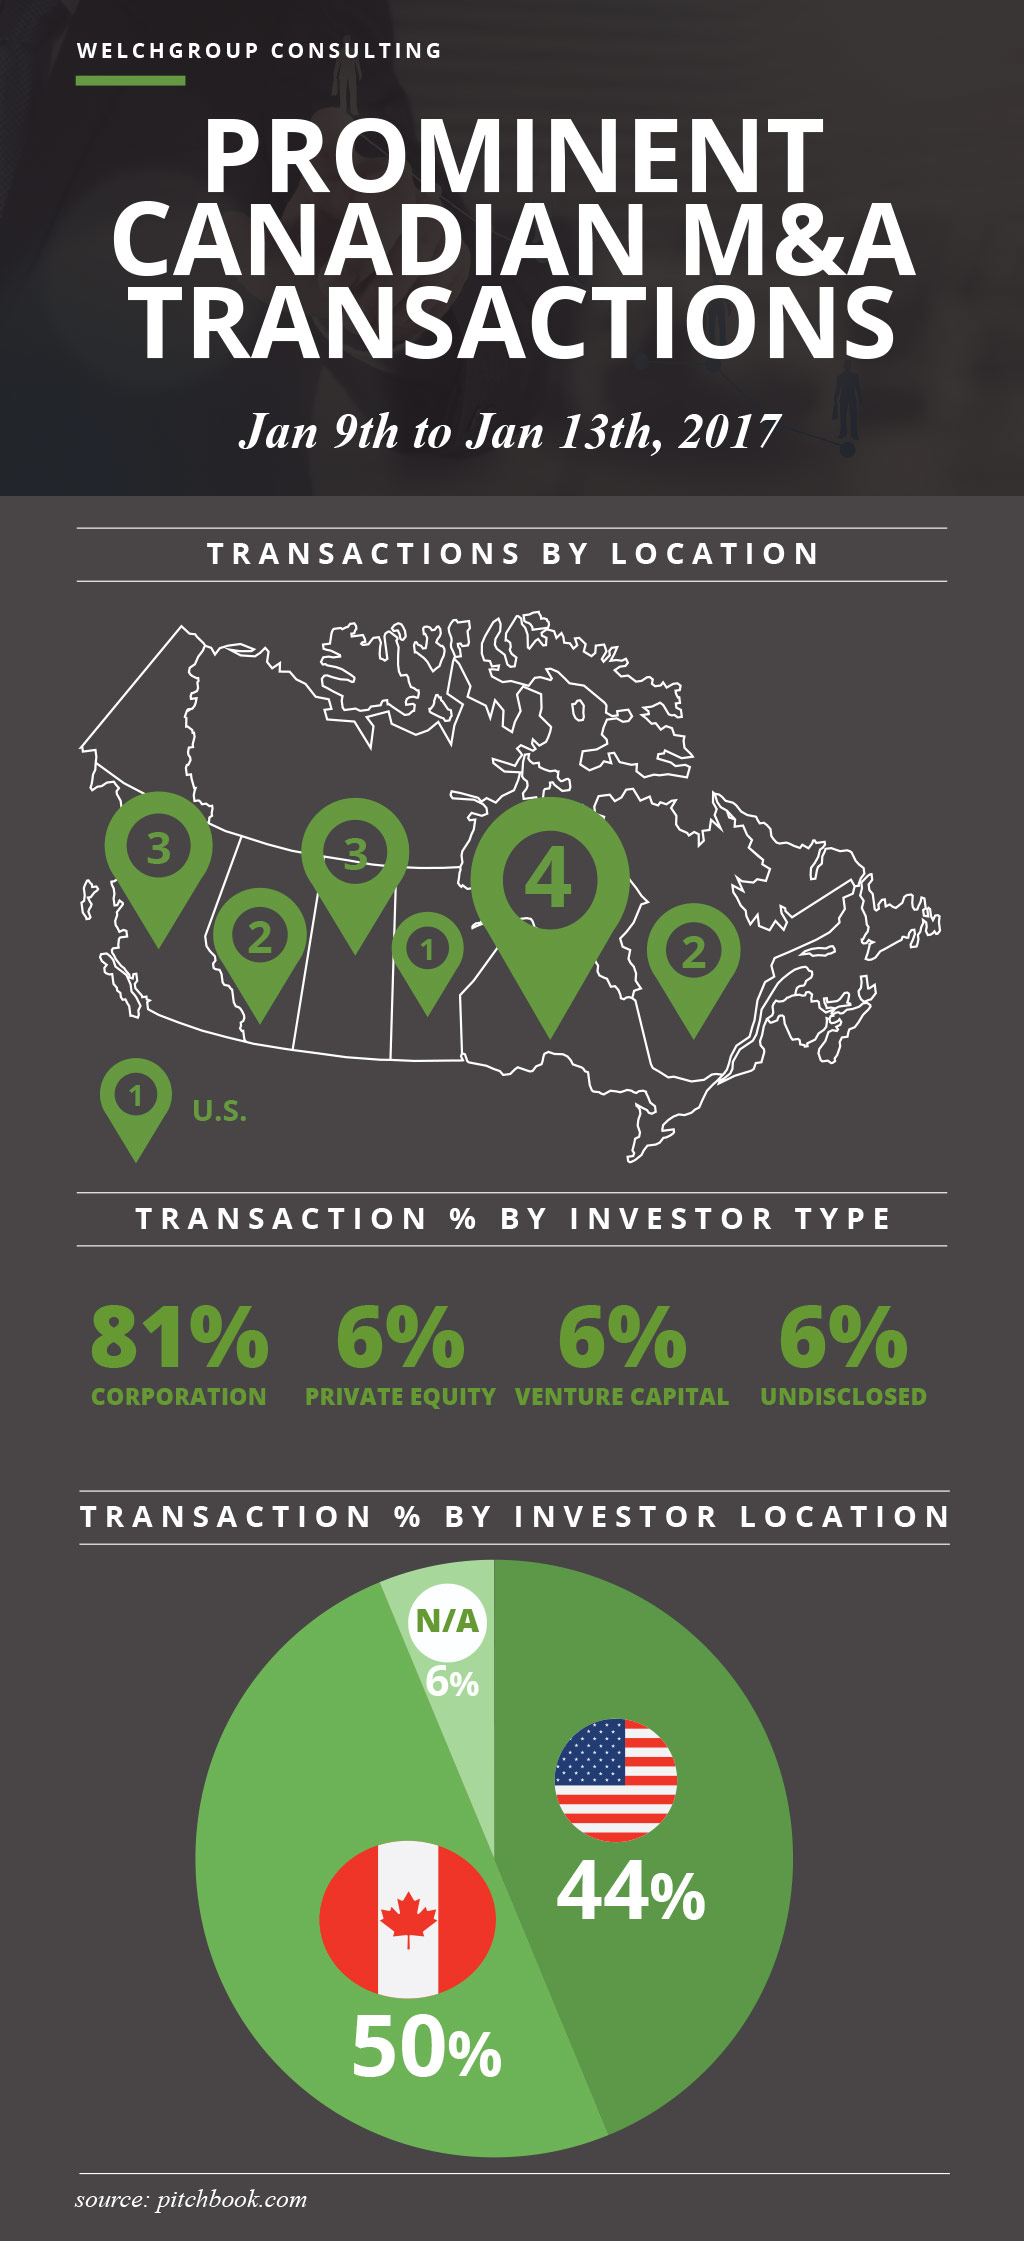 Prominent Canadian M&A Transactions